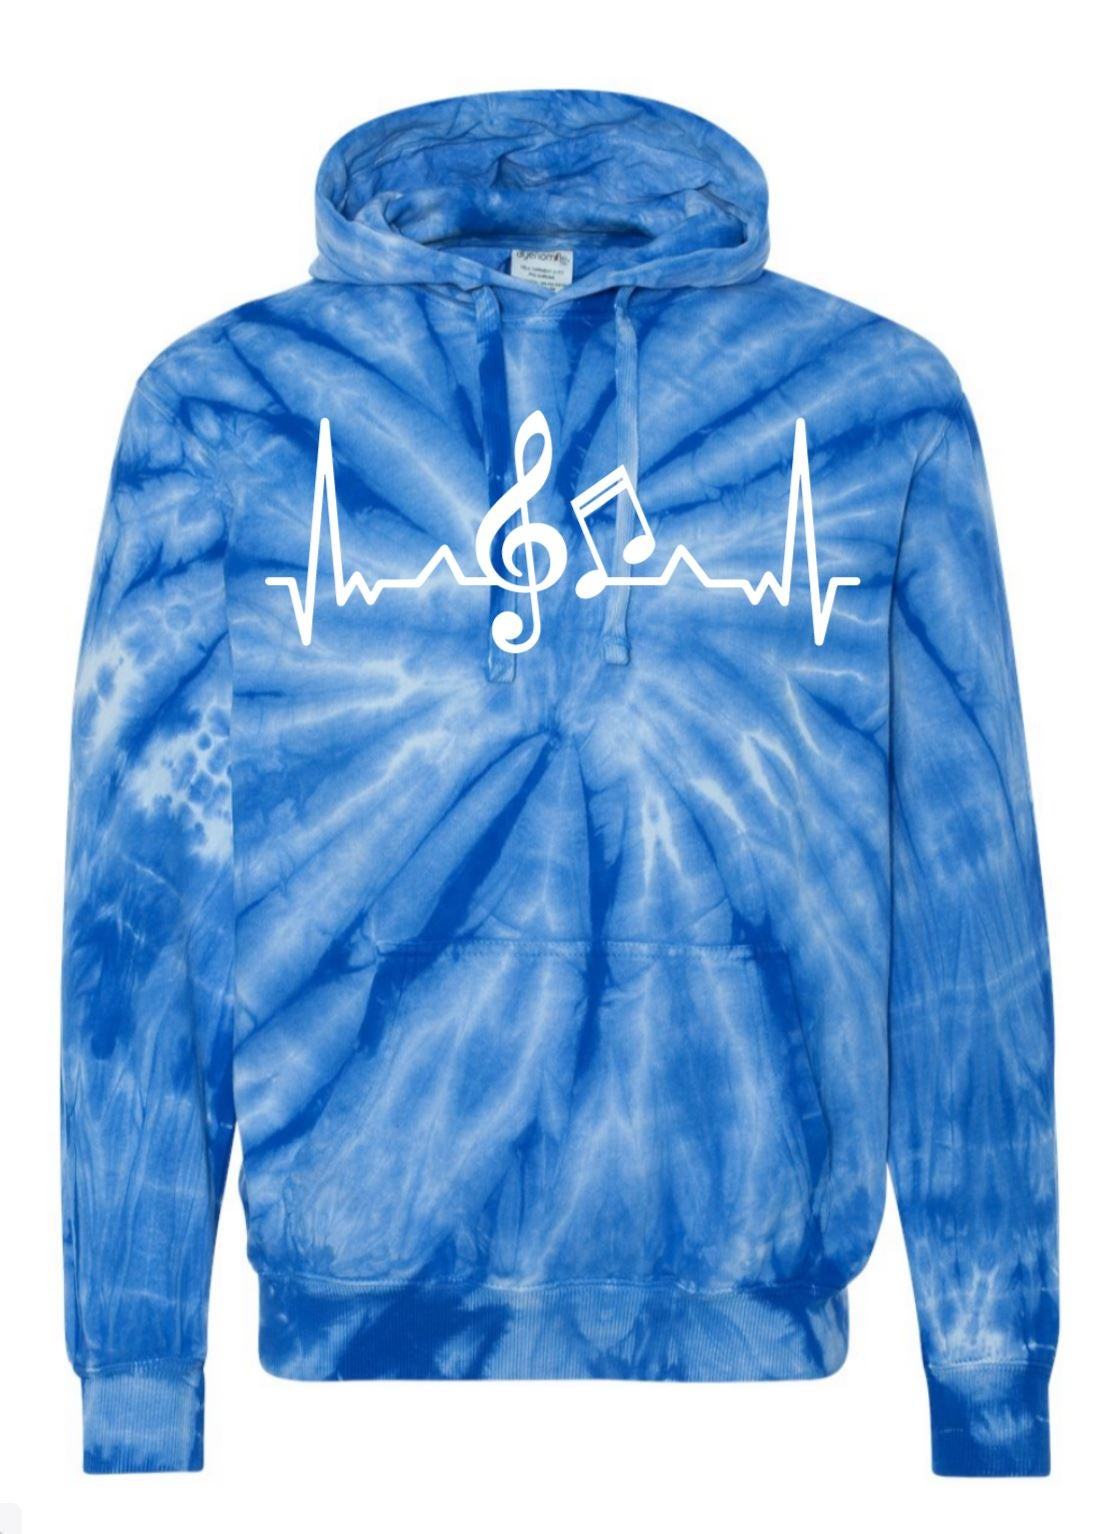 Image of MUSIC HEARTBEAT TIE DYE HOODED SWEATSHIRT